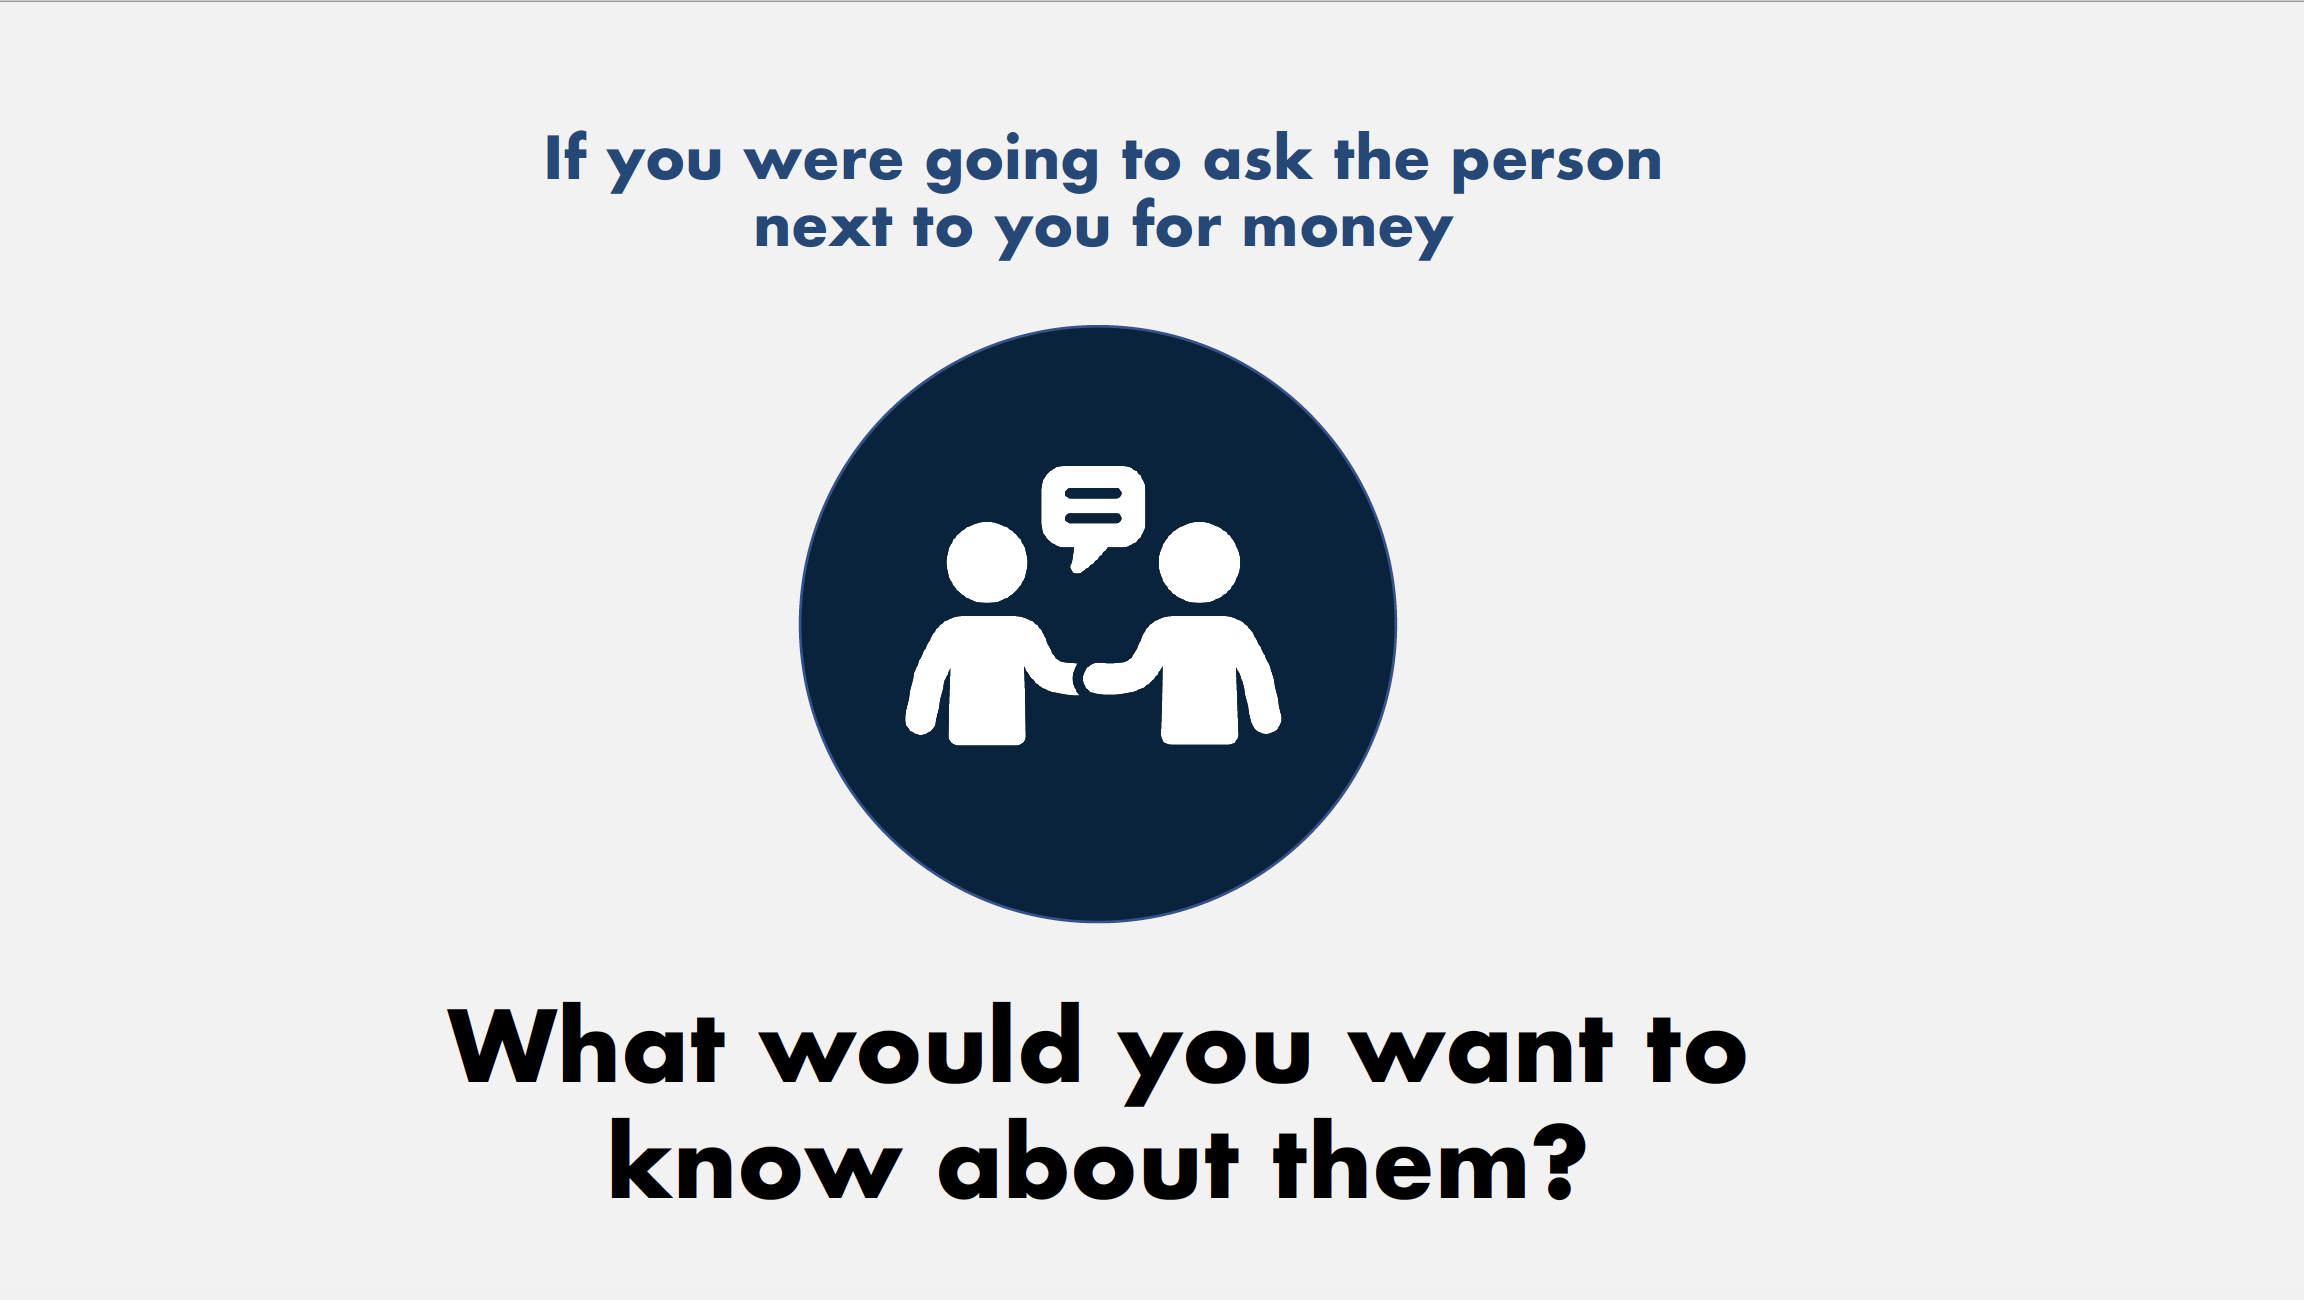 If you were going to ask the person next to you for money, what would you want to know about them?